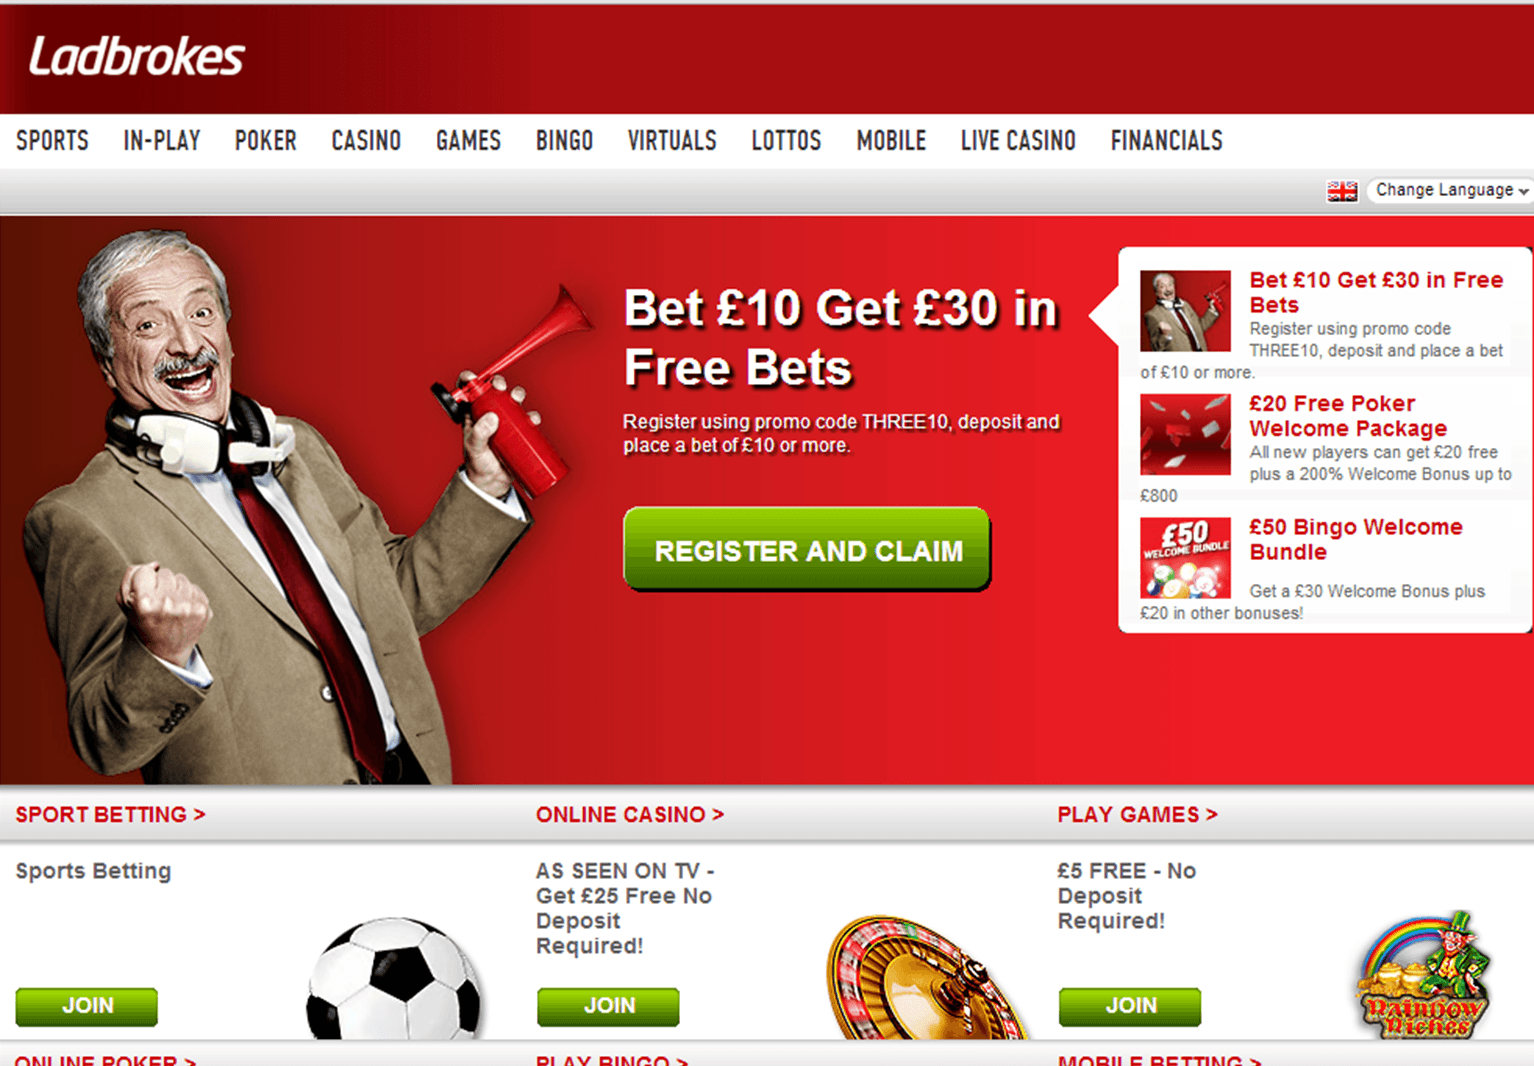 org_14968_ladbrokes-home-page